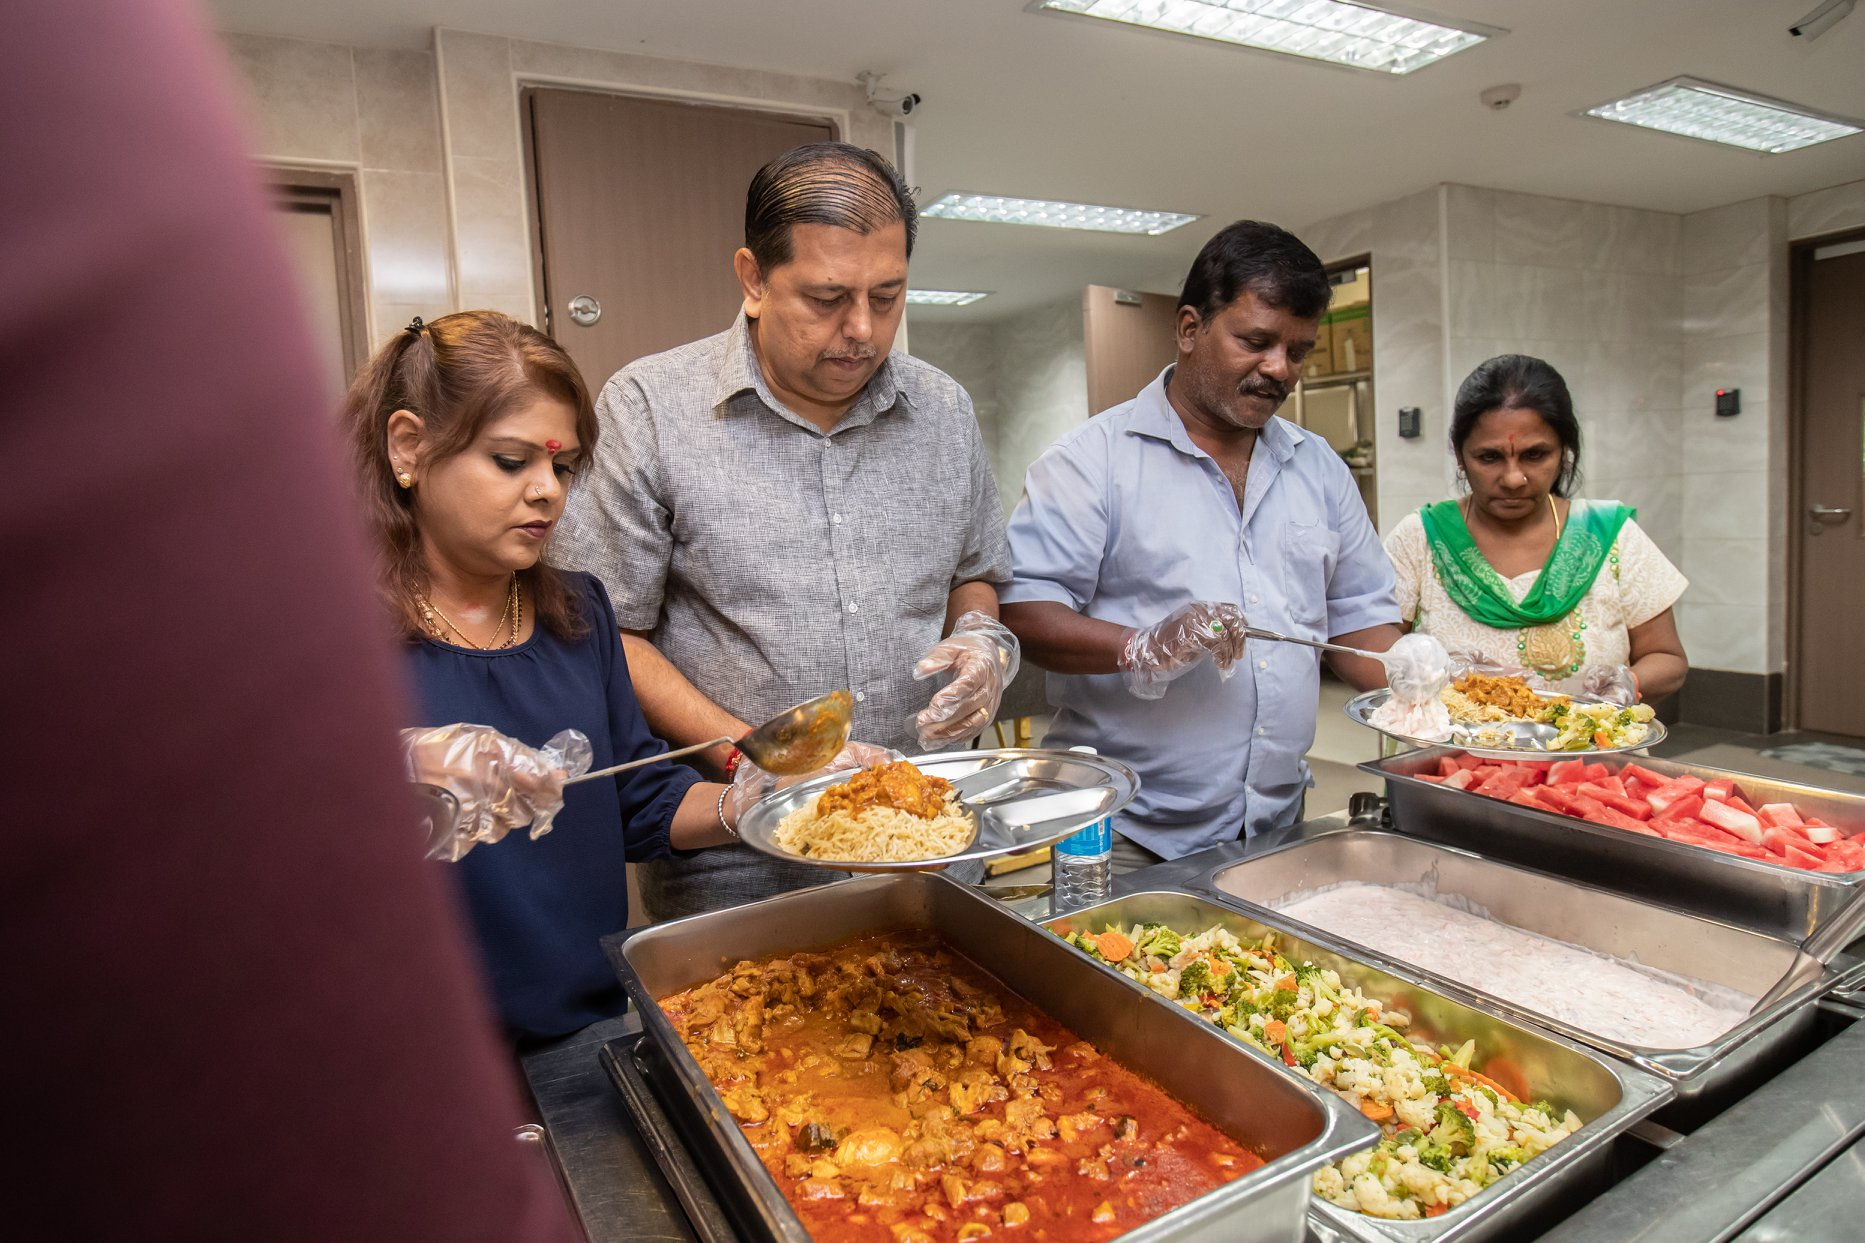 Volunteers from the Sri Mariamman Temple served lunch to residents at Sunlove Home. Photo courtesy: Hindu Endowments Board